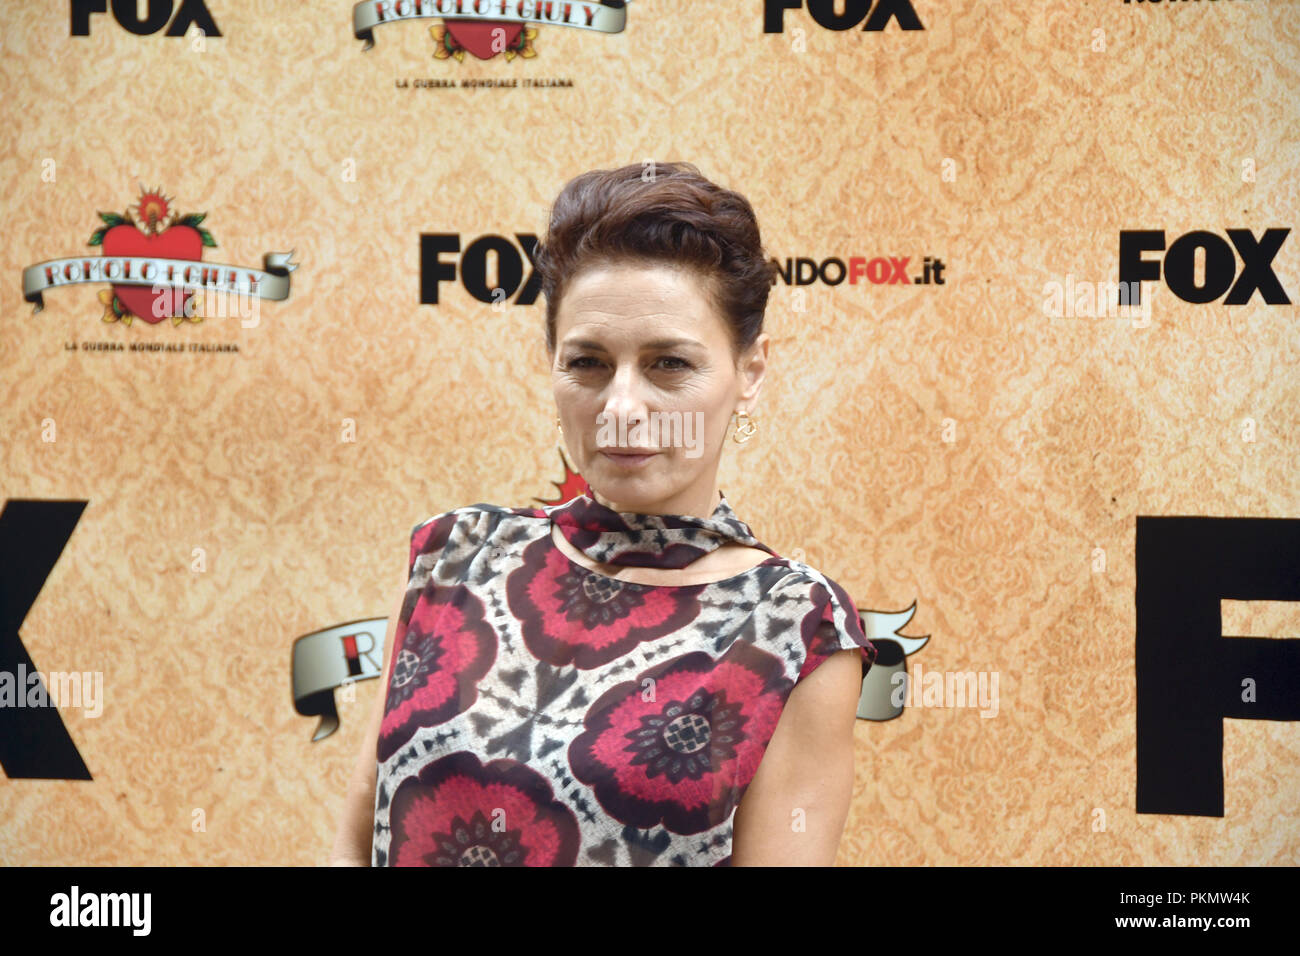 Rome Italy 13 September 2018 - Palace Brancaccio - Photocall presentation comedy series tv Romolo + Giuly Lidia Vitale in the role of Anna Montacchi Credit: Giuseppe Andidero/Alamy Live News - Stock Image